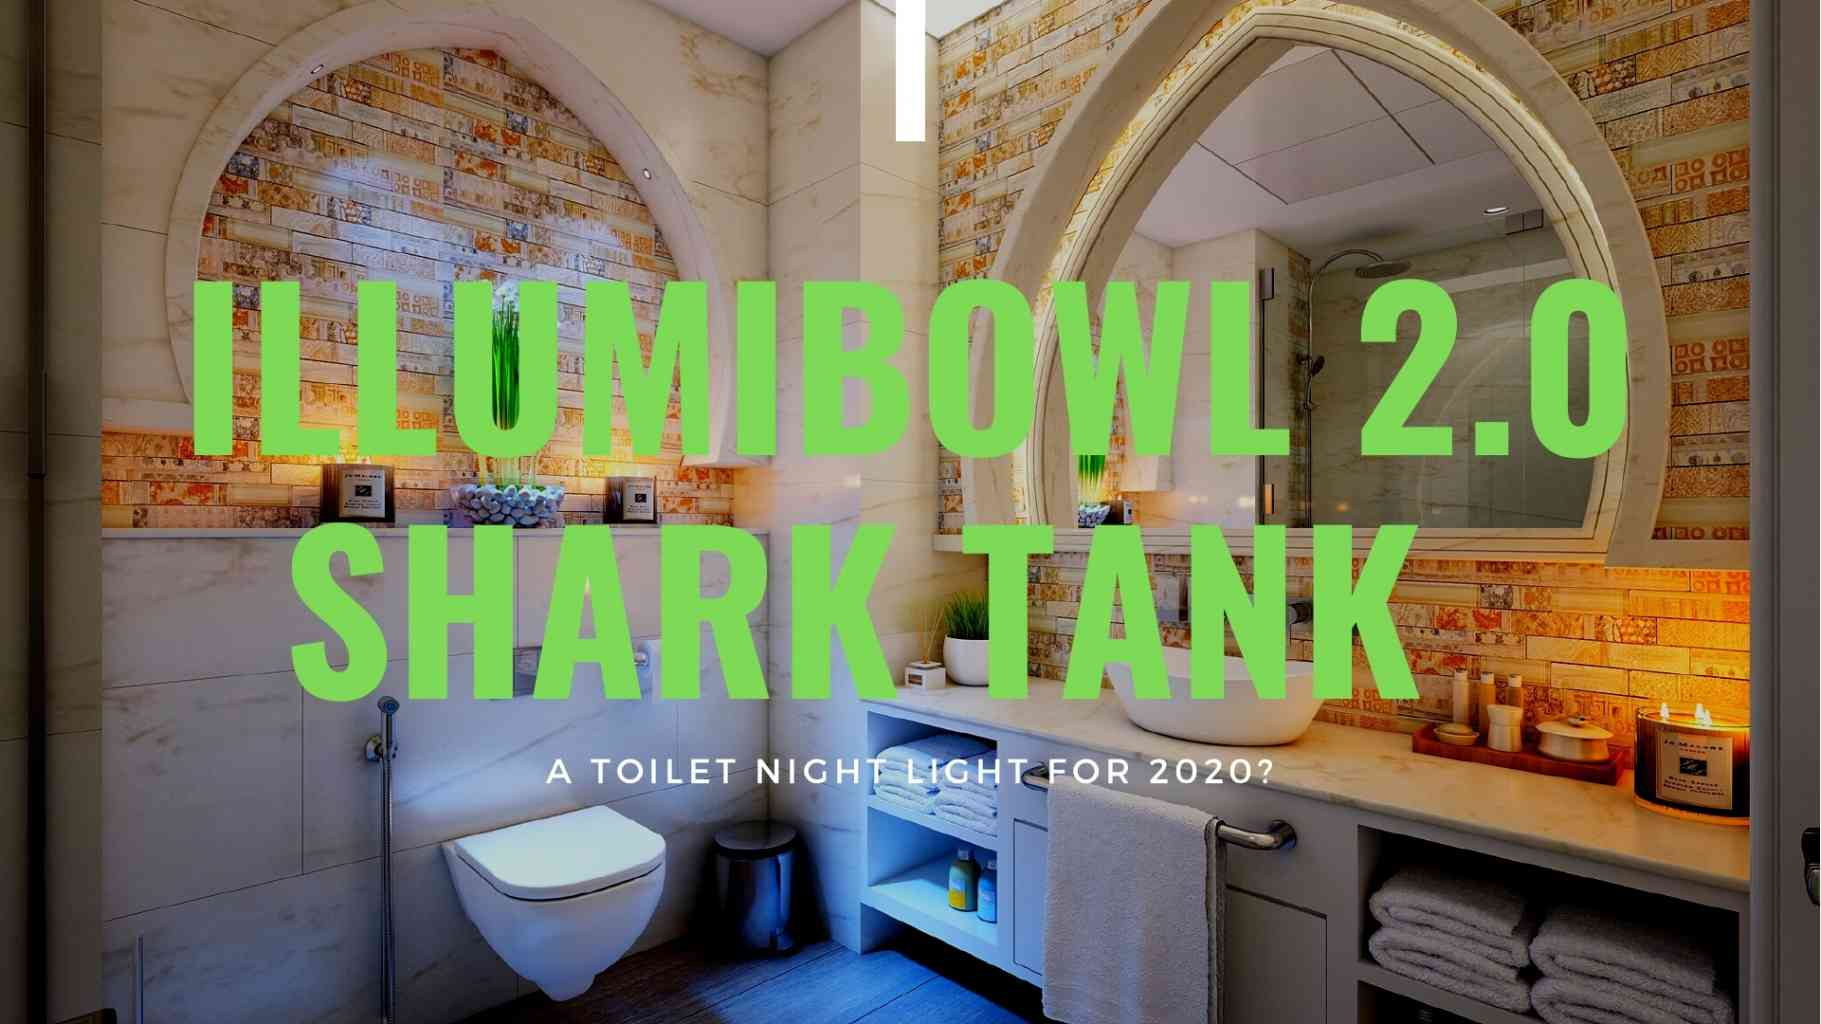 Illumibowl 2.0 Shark Tank – A toilet night light for 2020?